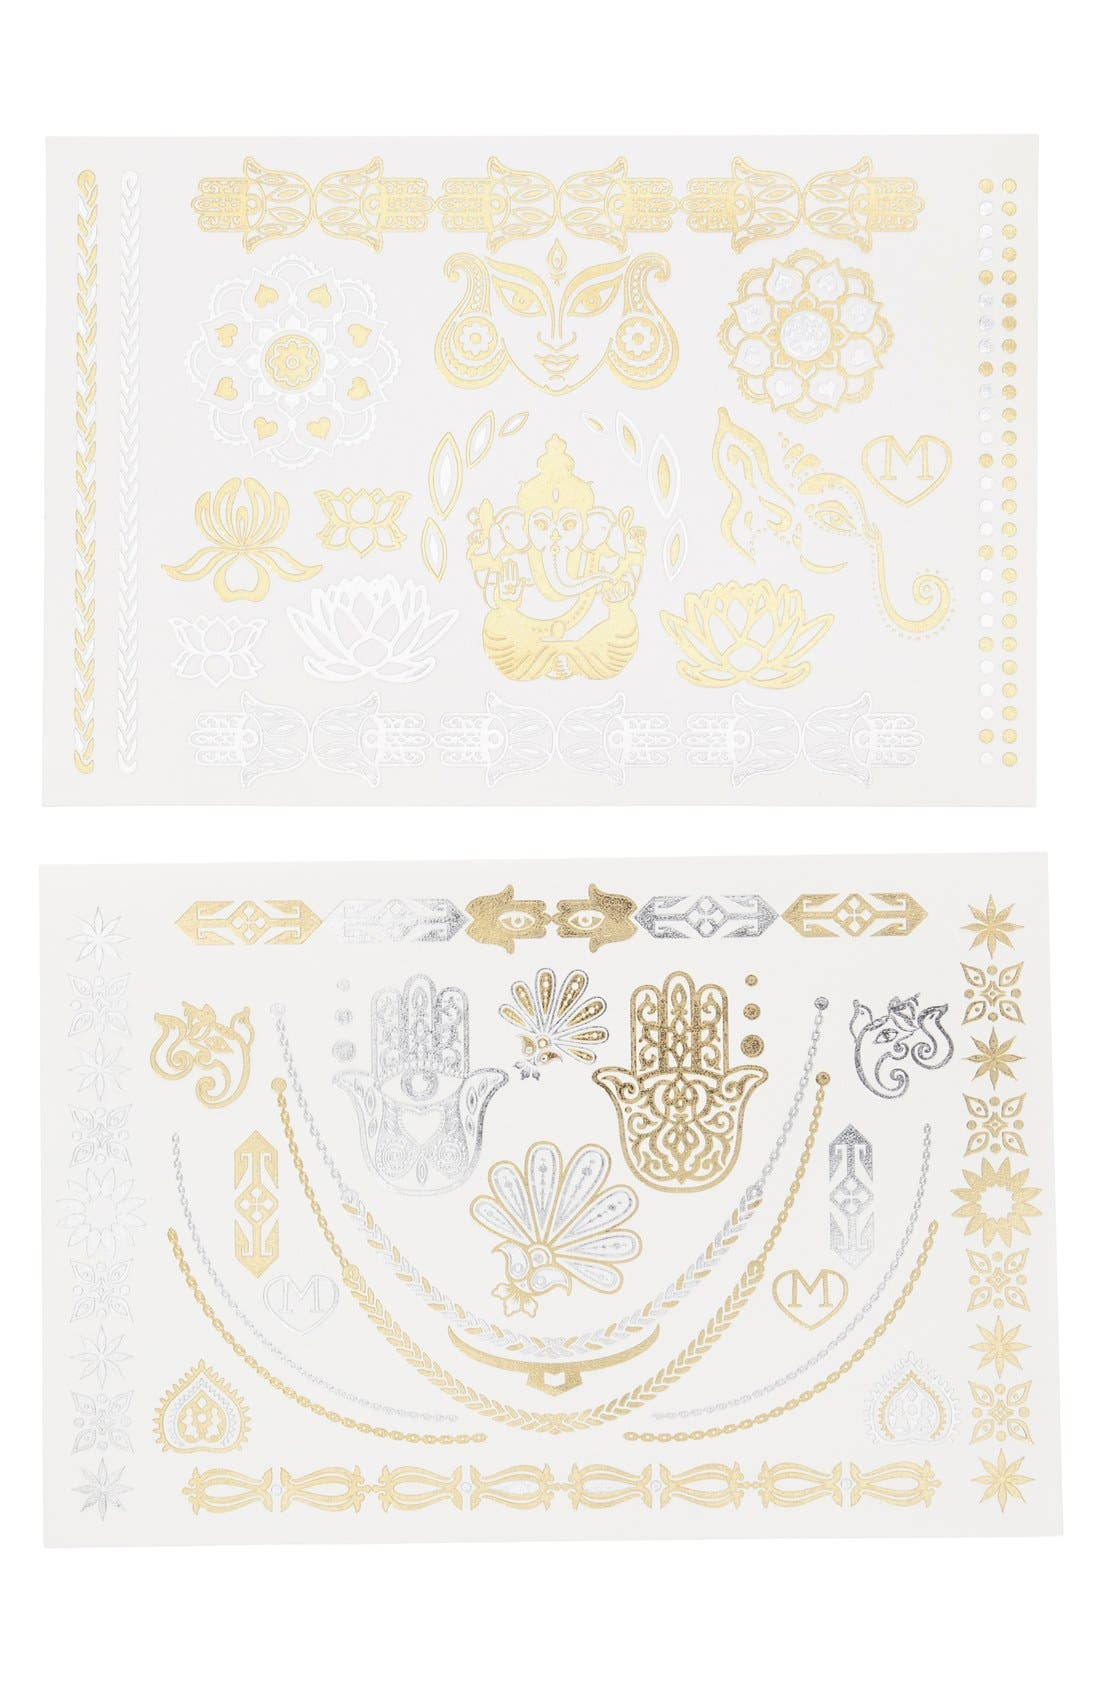 Alternate Image 1 Selected - Madness Accessories 'Nomad' Temporary Flash Tattoos (2-Pack)